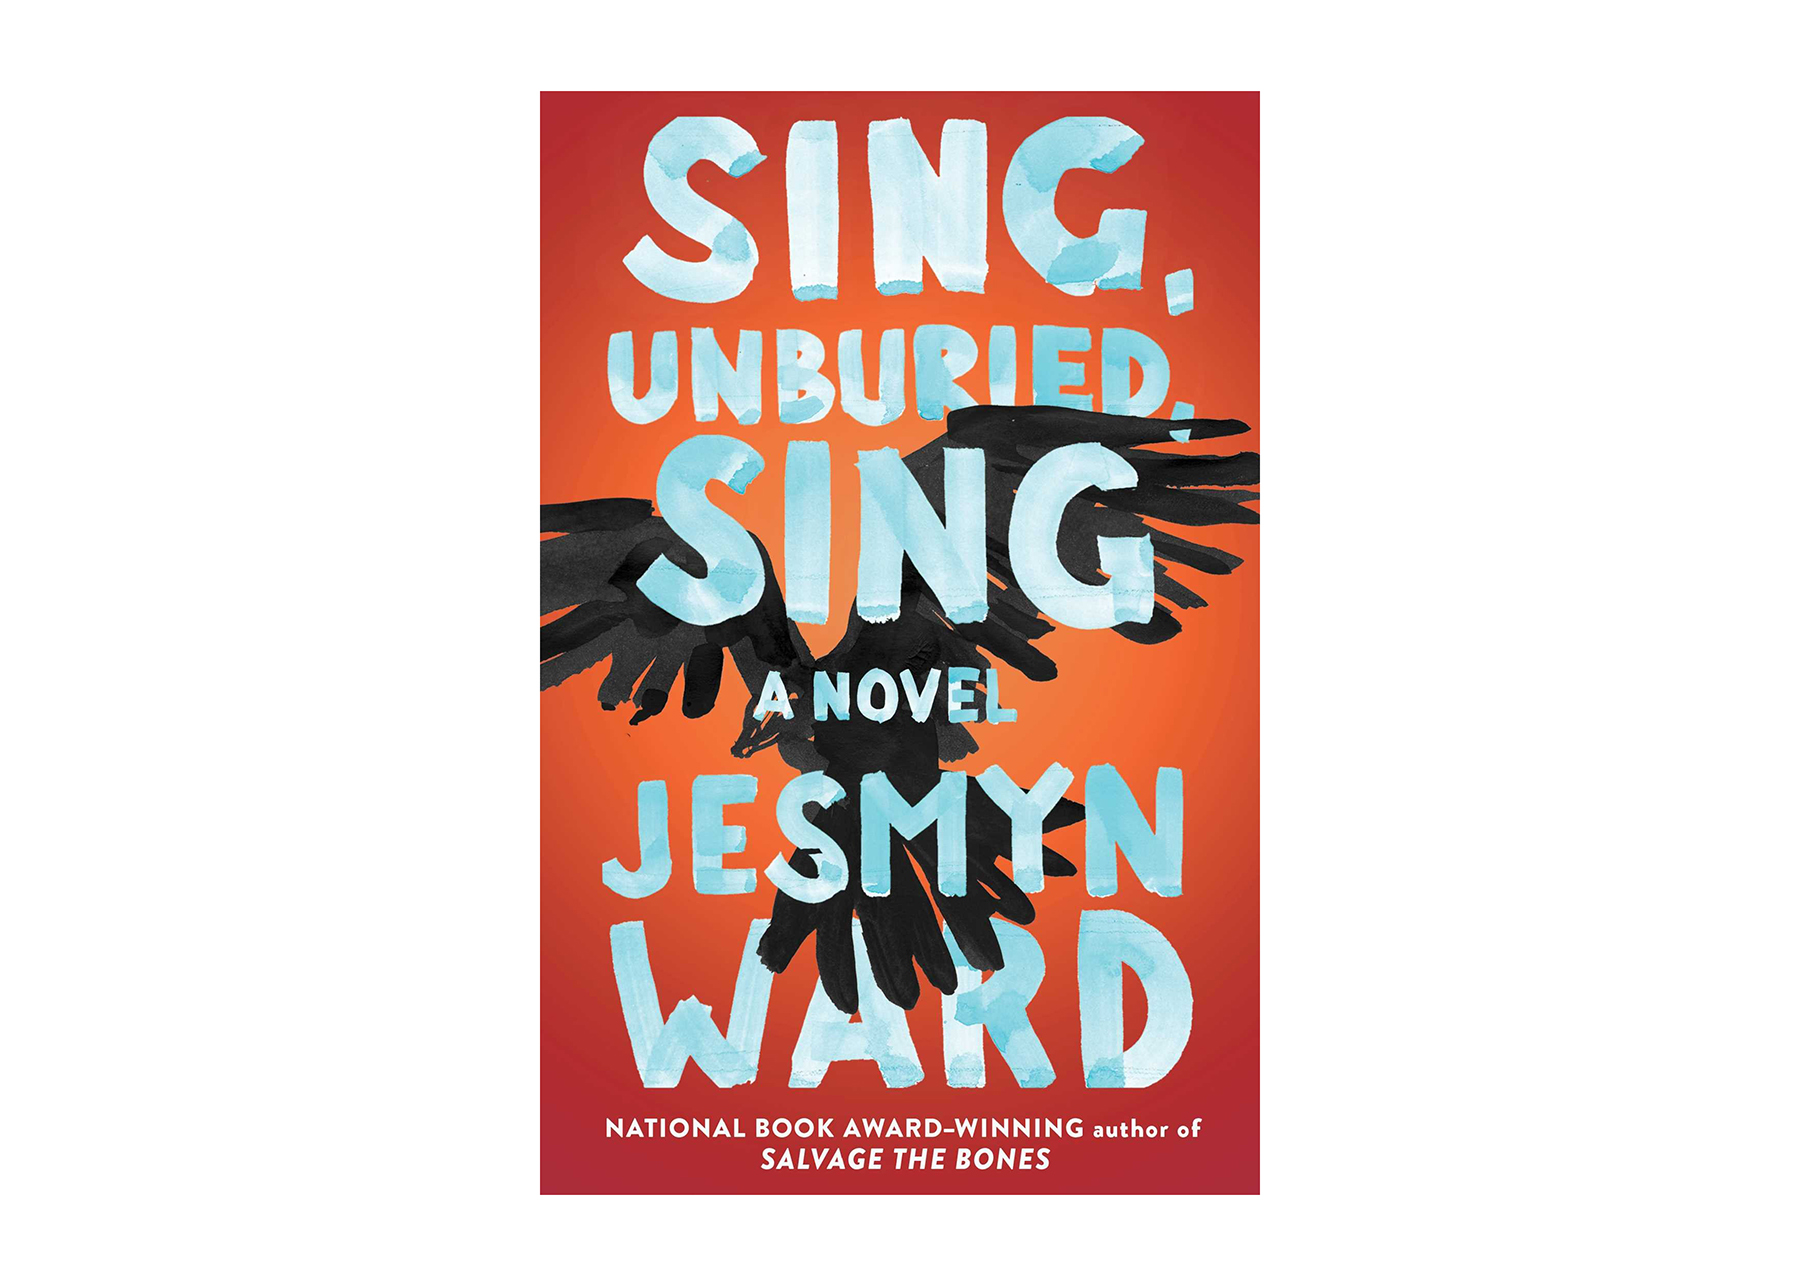 Sing, Unburied, Sing by Jesymn Ward